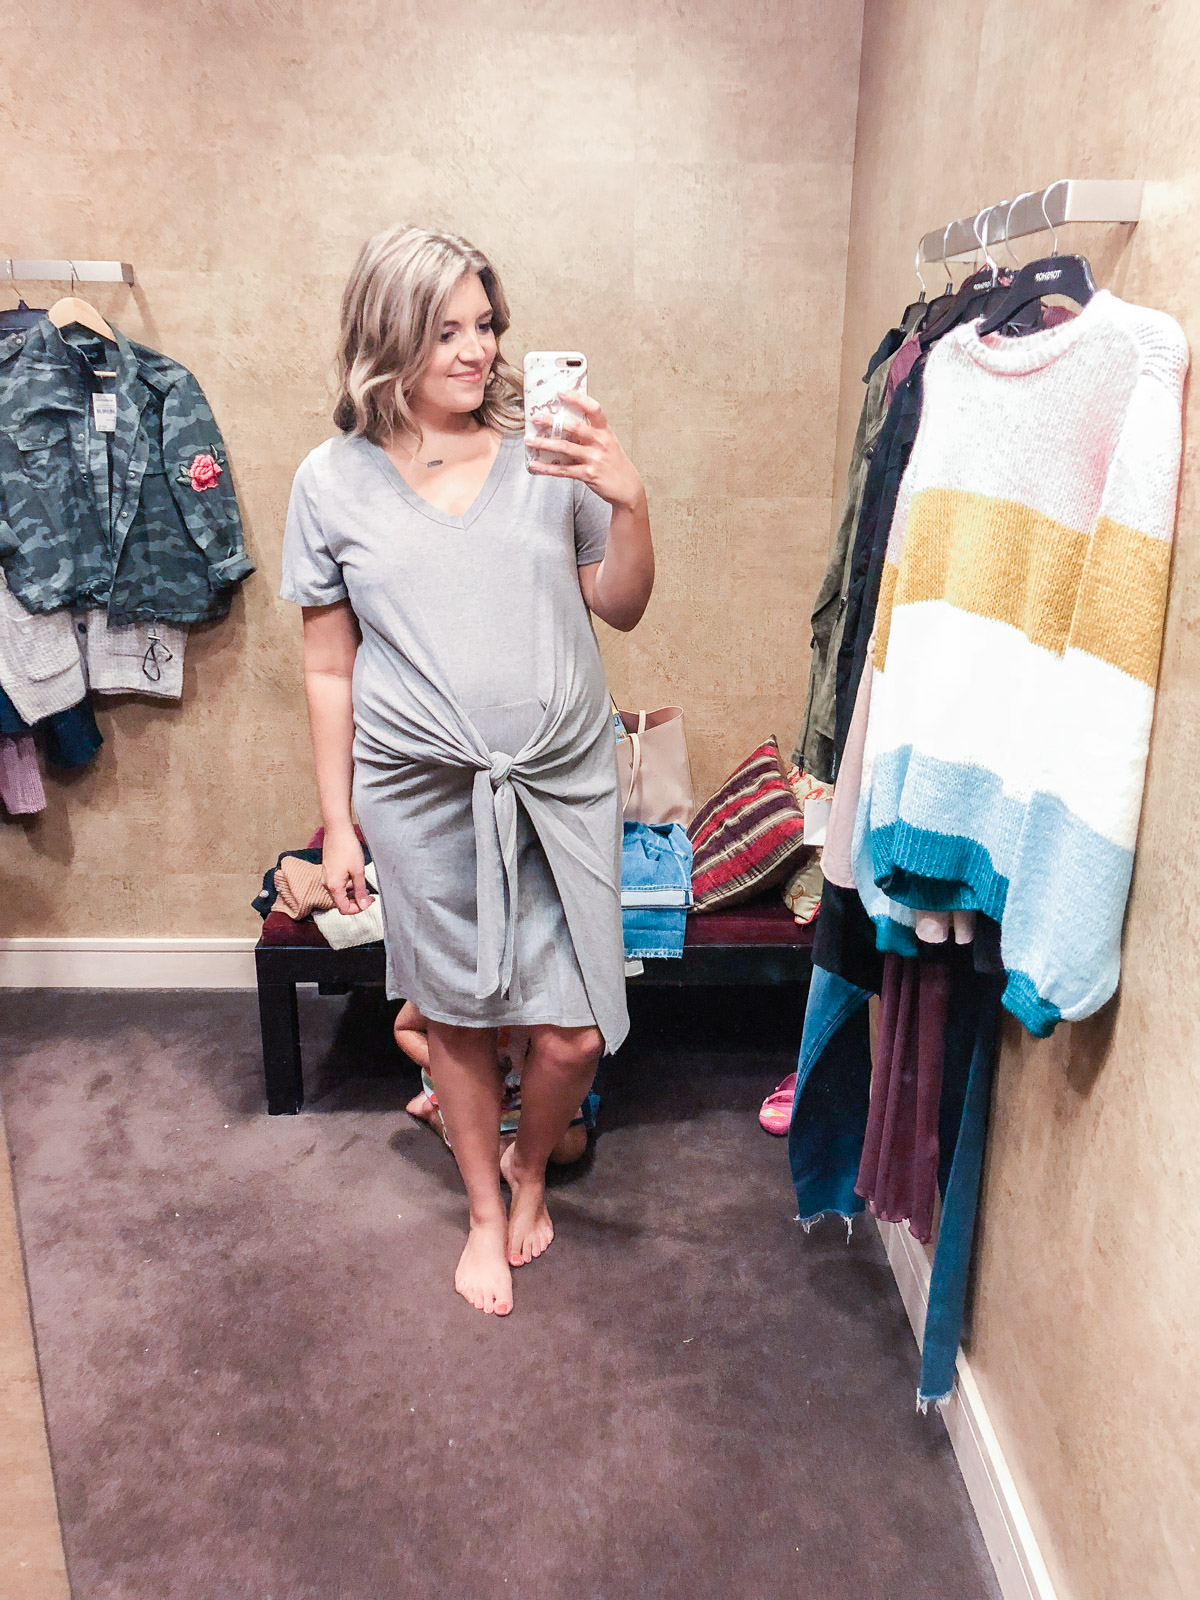 Tie-waist dress - Nordstrom anniversary sale 2018 try-on session: over 25 items reviewed for fit and size! | bylaurenm.com